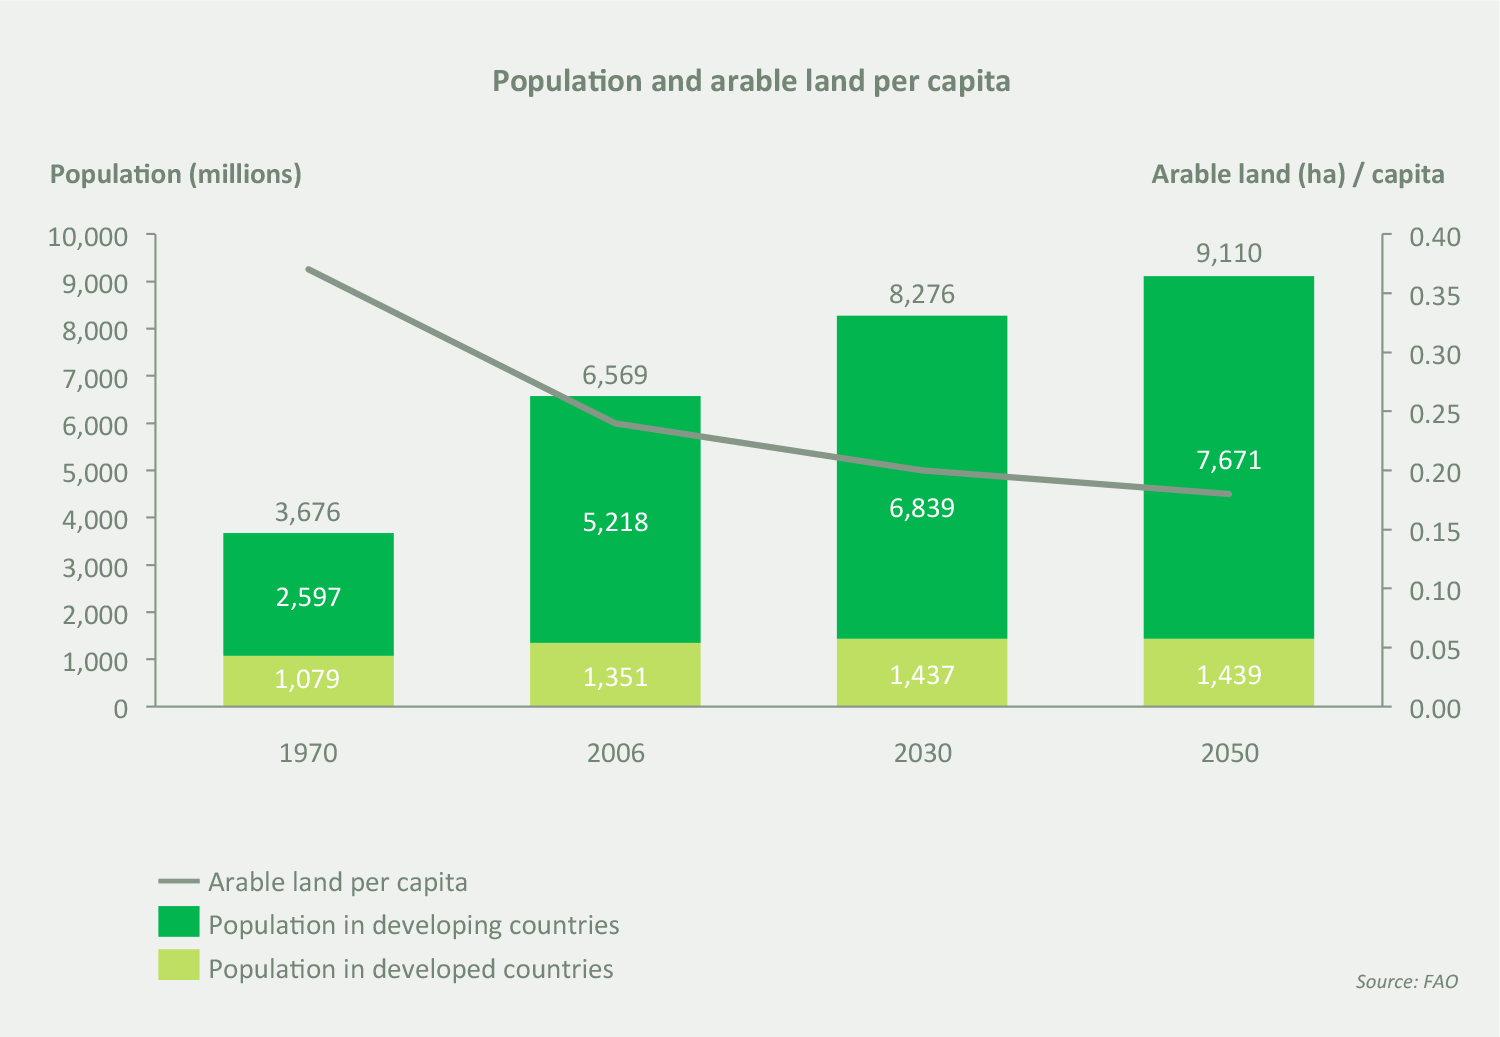 01-Population-and-arable-land-per-capita.png